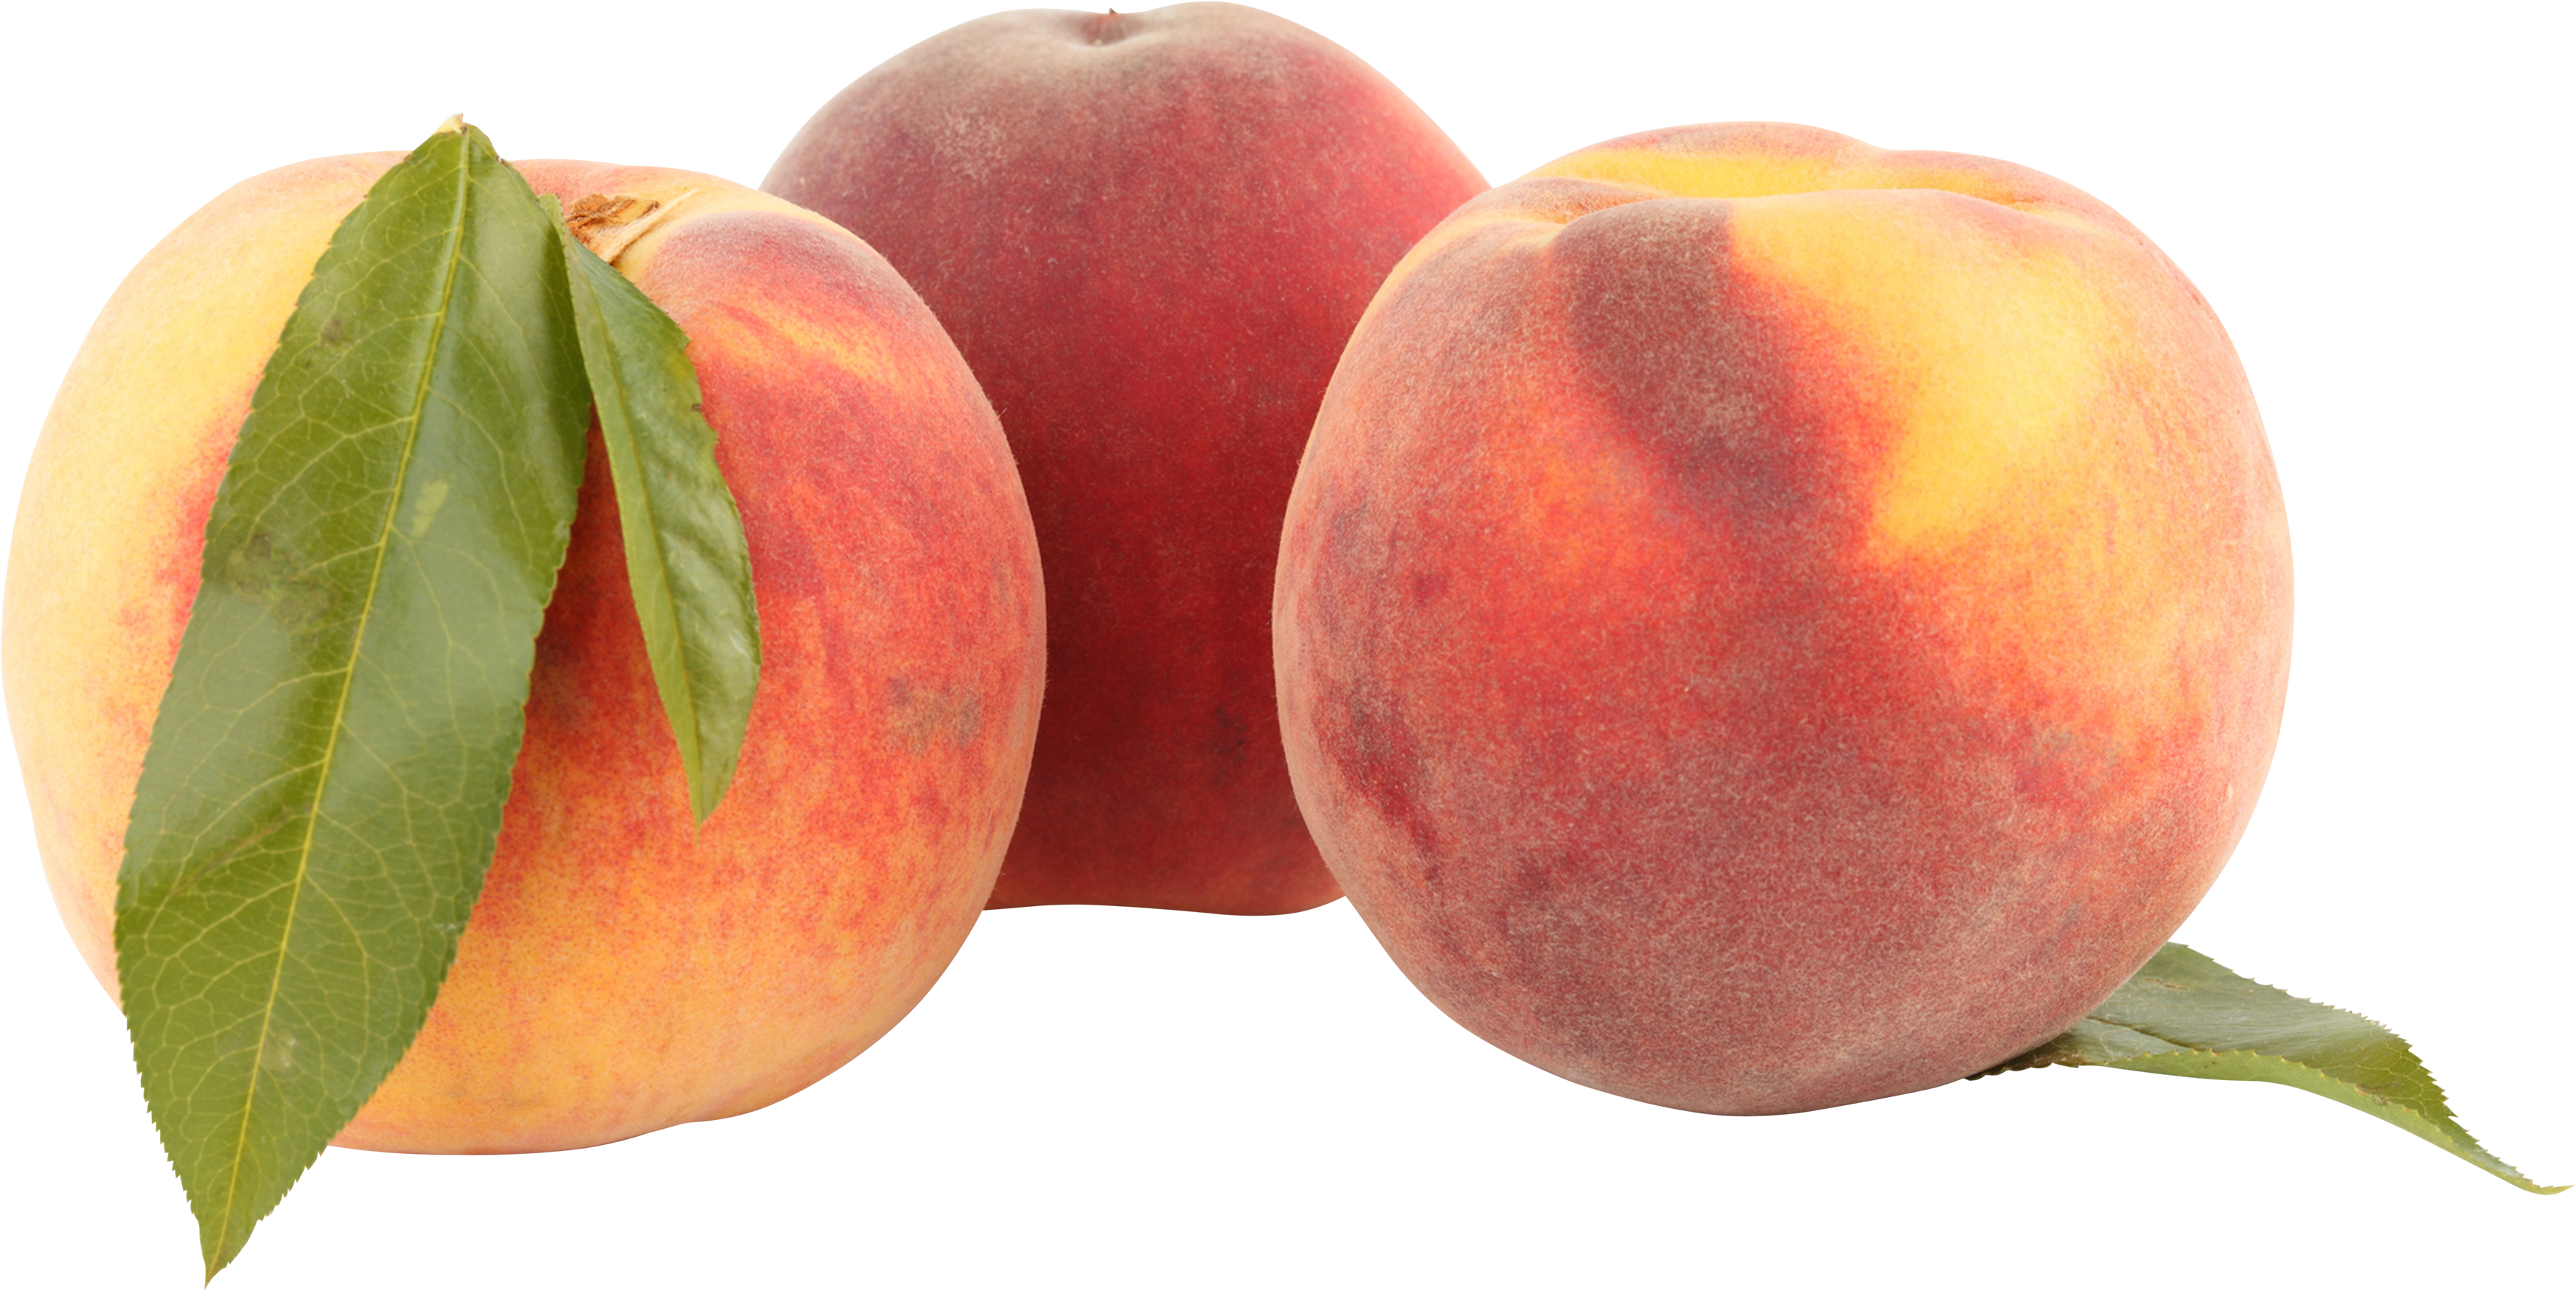 Peaches transparent. Png image purepng free